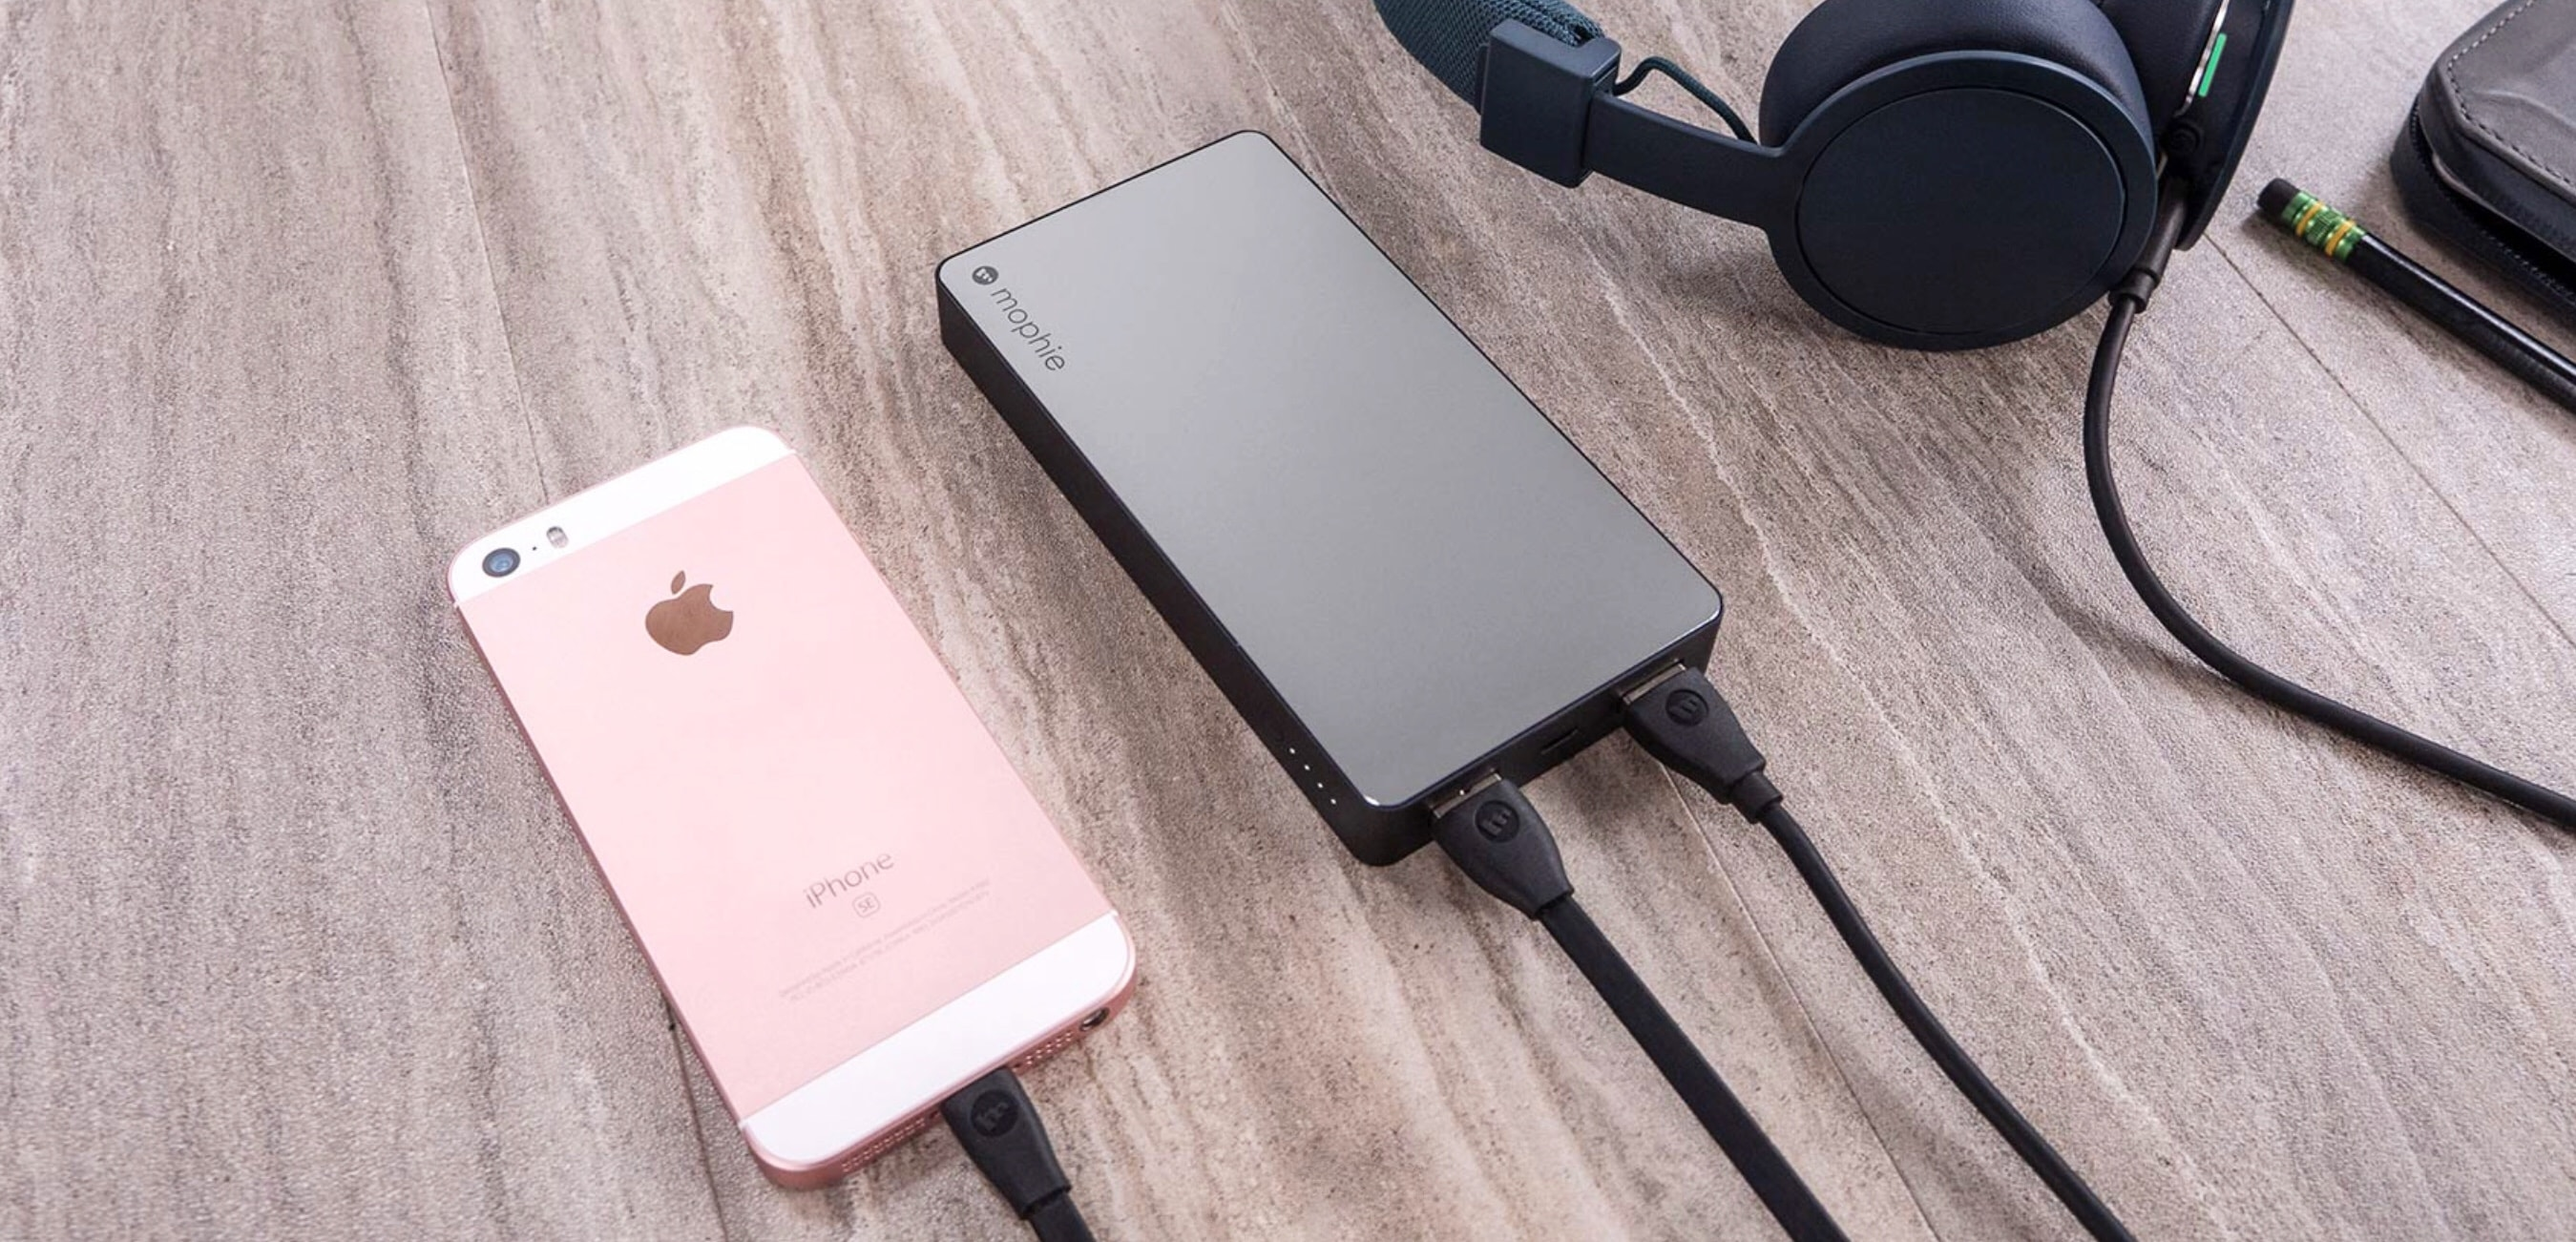 mophie Powerstation XXL was designed especially for devices with Lighting ports.